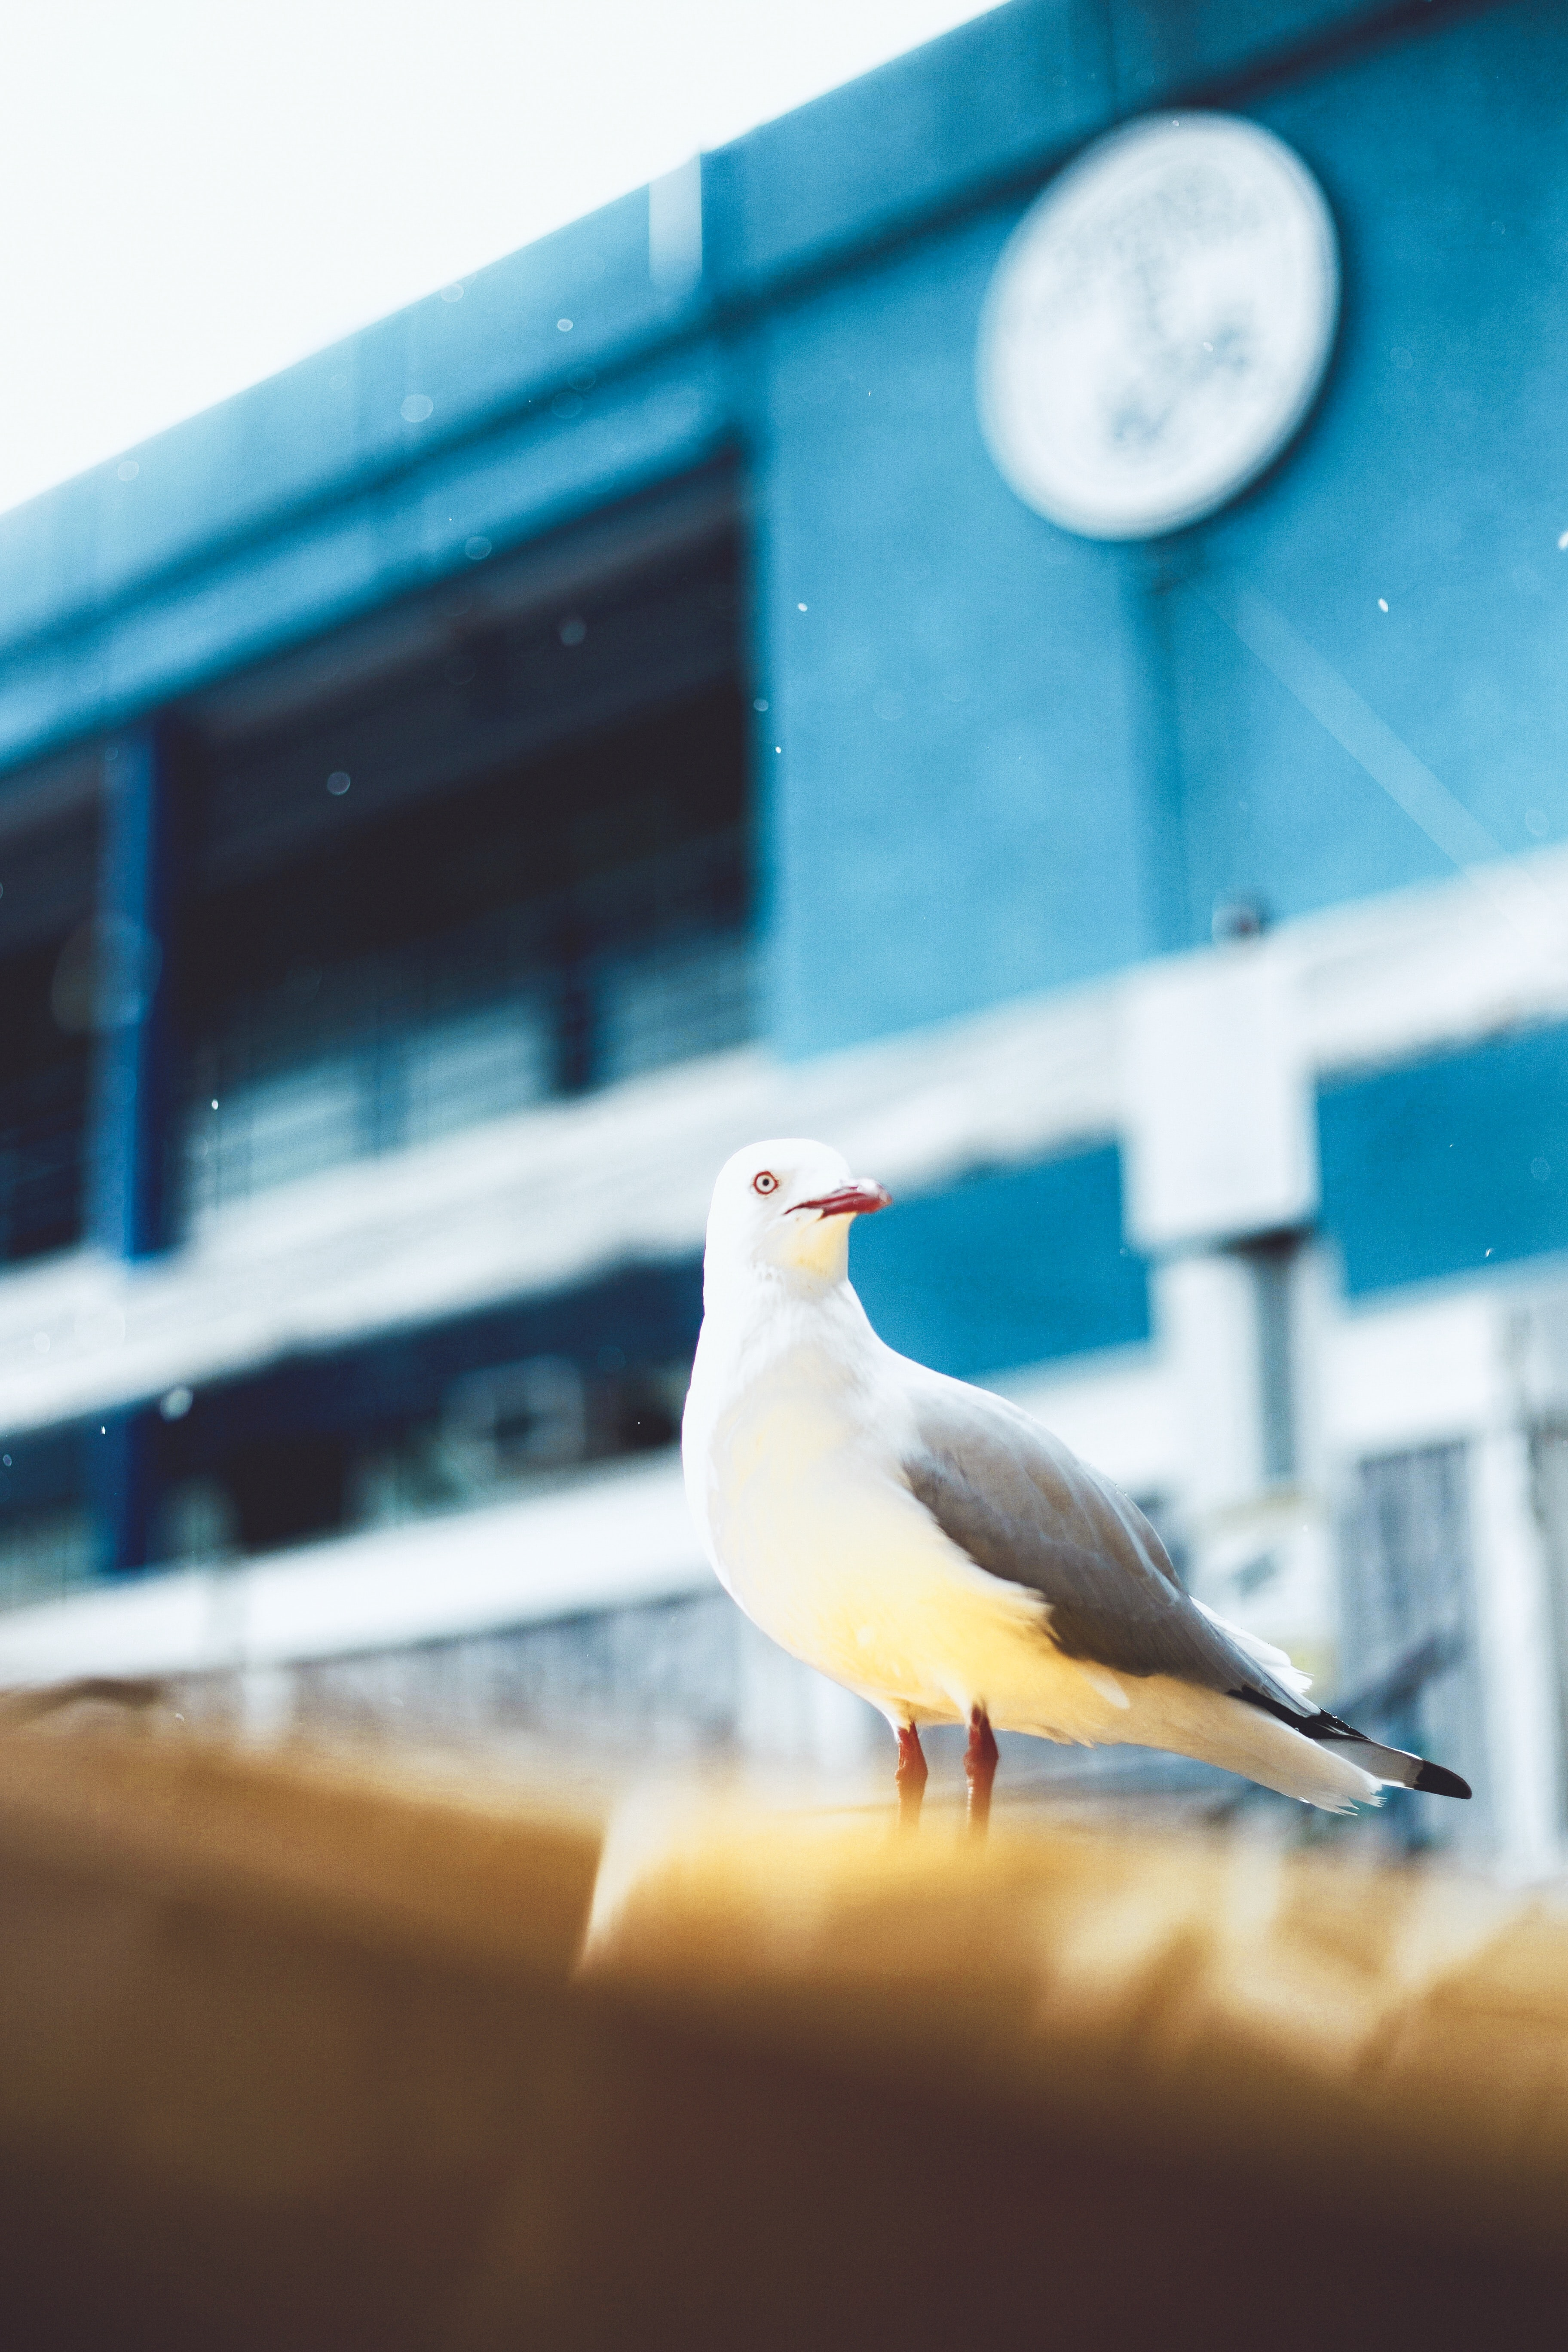 close up photograph of seagull near building